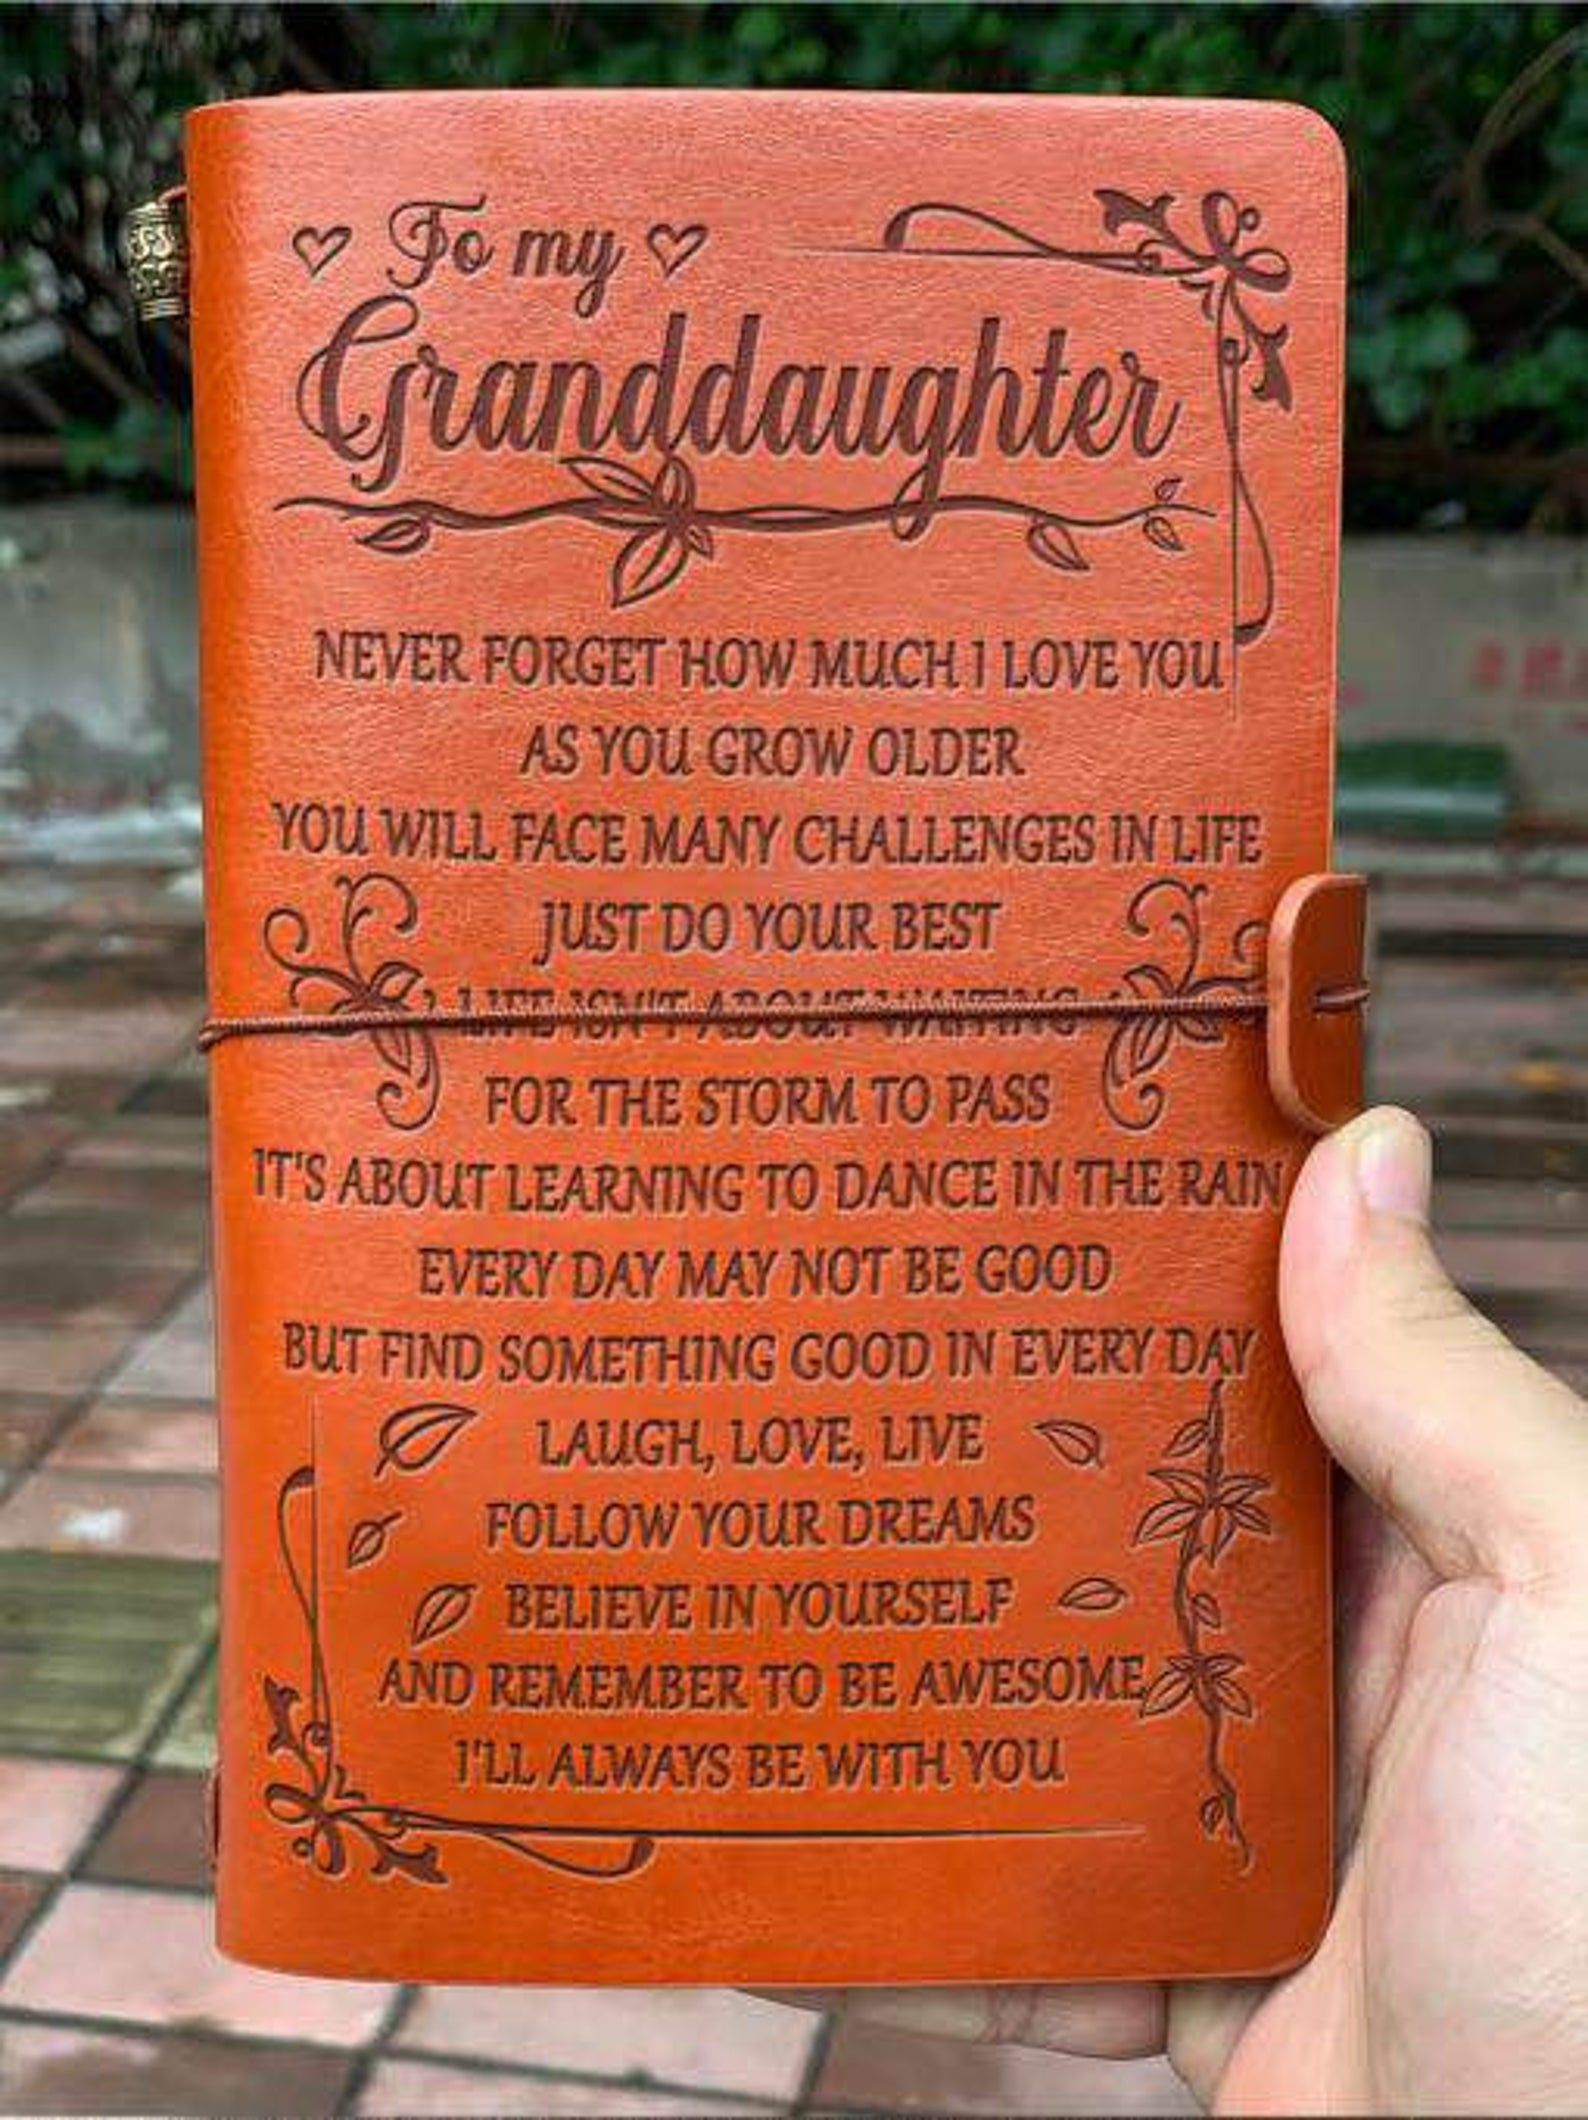 2021 To My Granddaughter Journal Gift Love From Grandma Etsy Journal Gift Grandaughter Quotes Granddaughter Quotes What should i write in my granddaughter